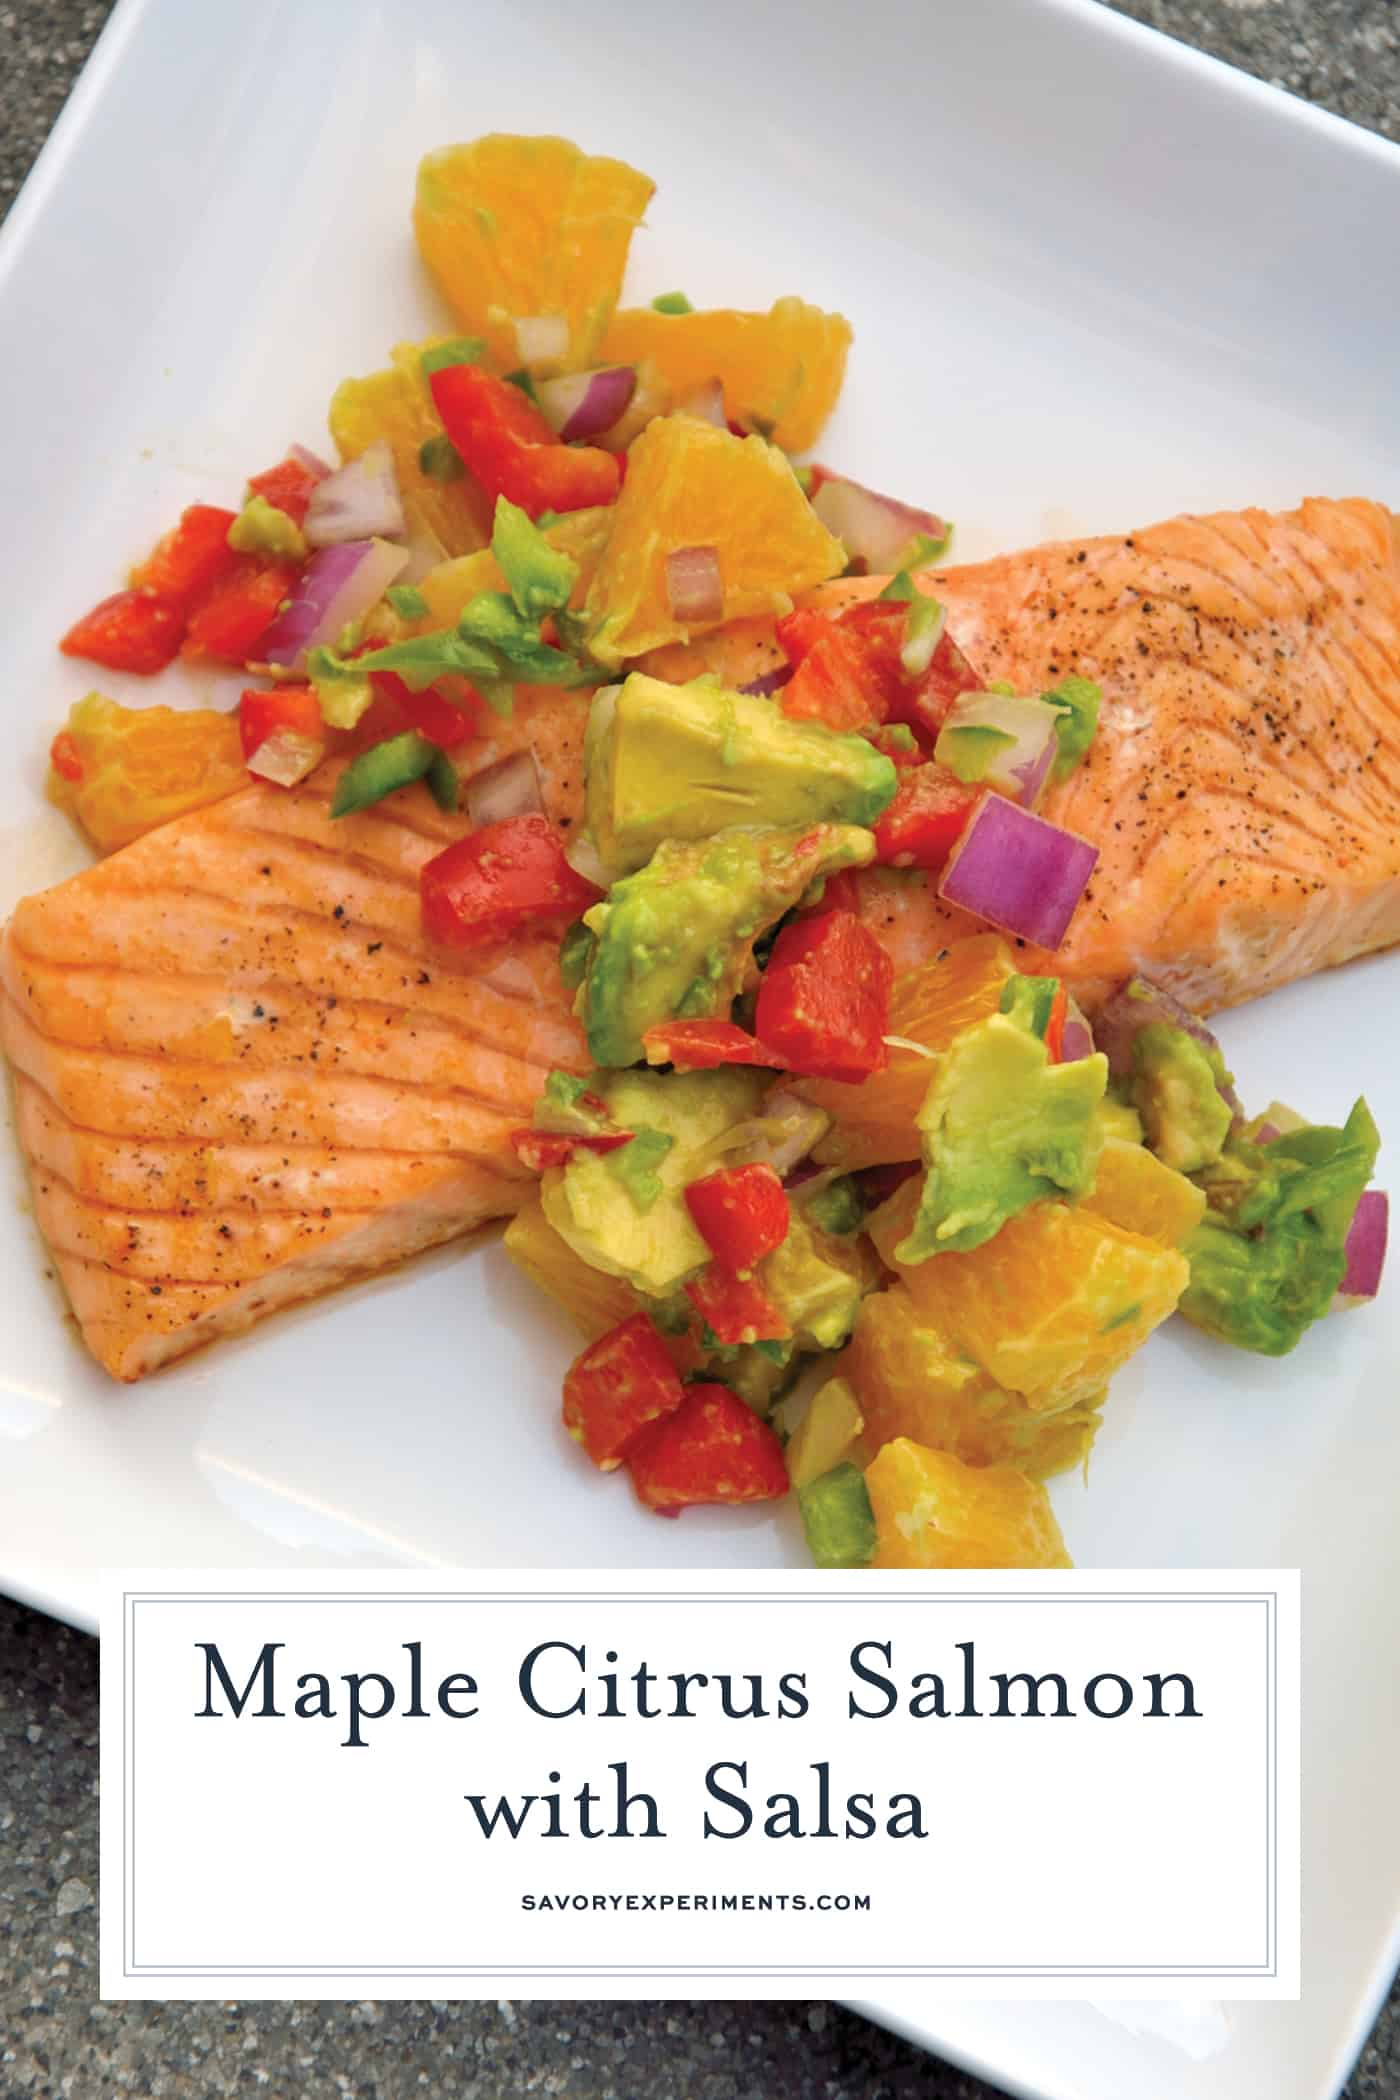 Maple Citrus Salmon with Orange-Avocado Salsa is a healthy and easy baked salmon recipe perfect for any quick weeknight meal. #salmonrecipes #bakedsalmon www.savoryexperiments.com